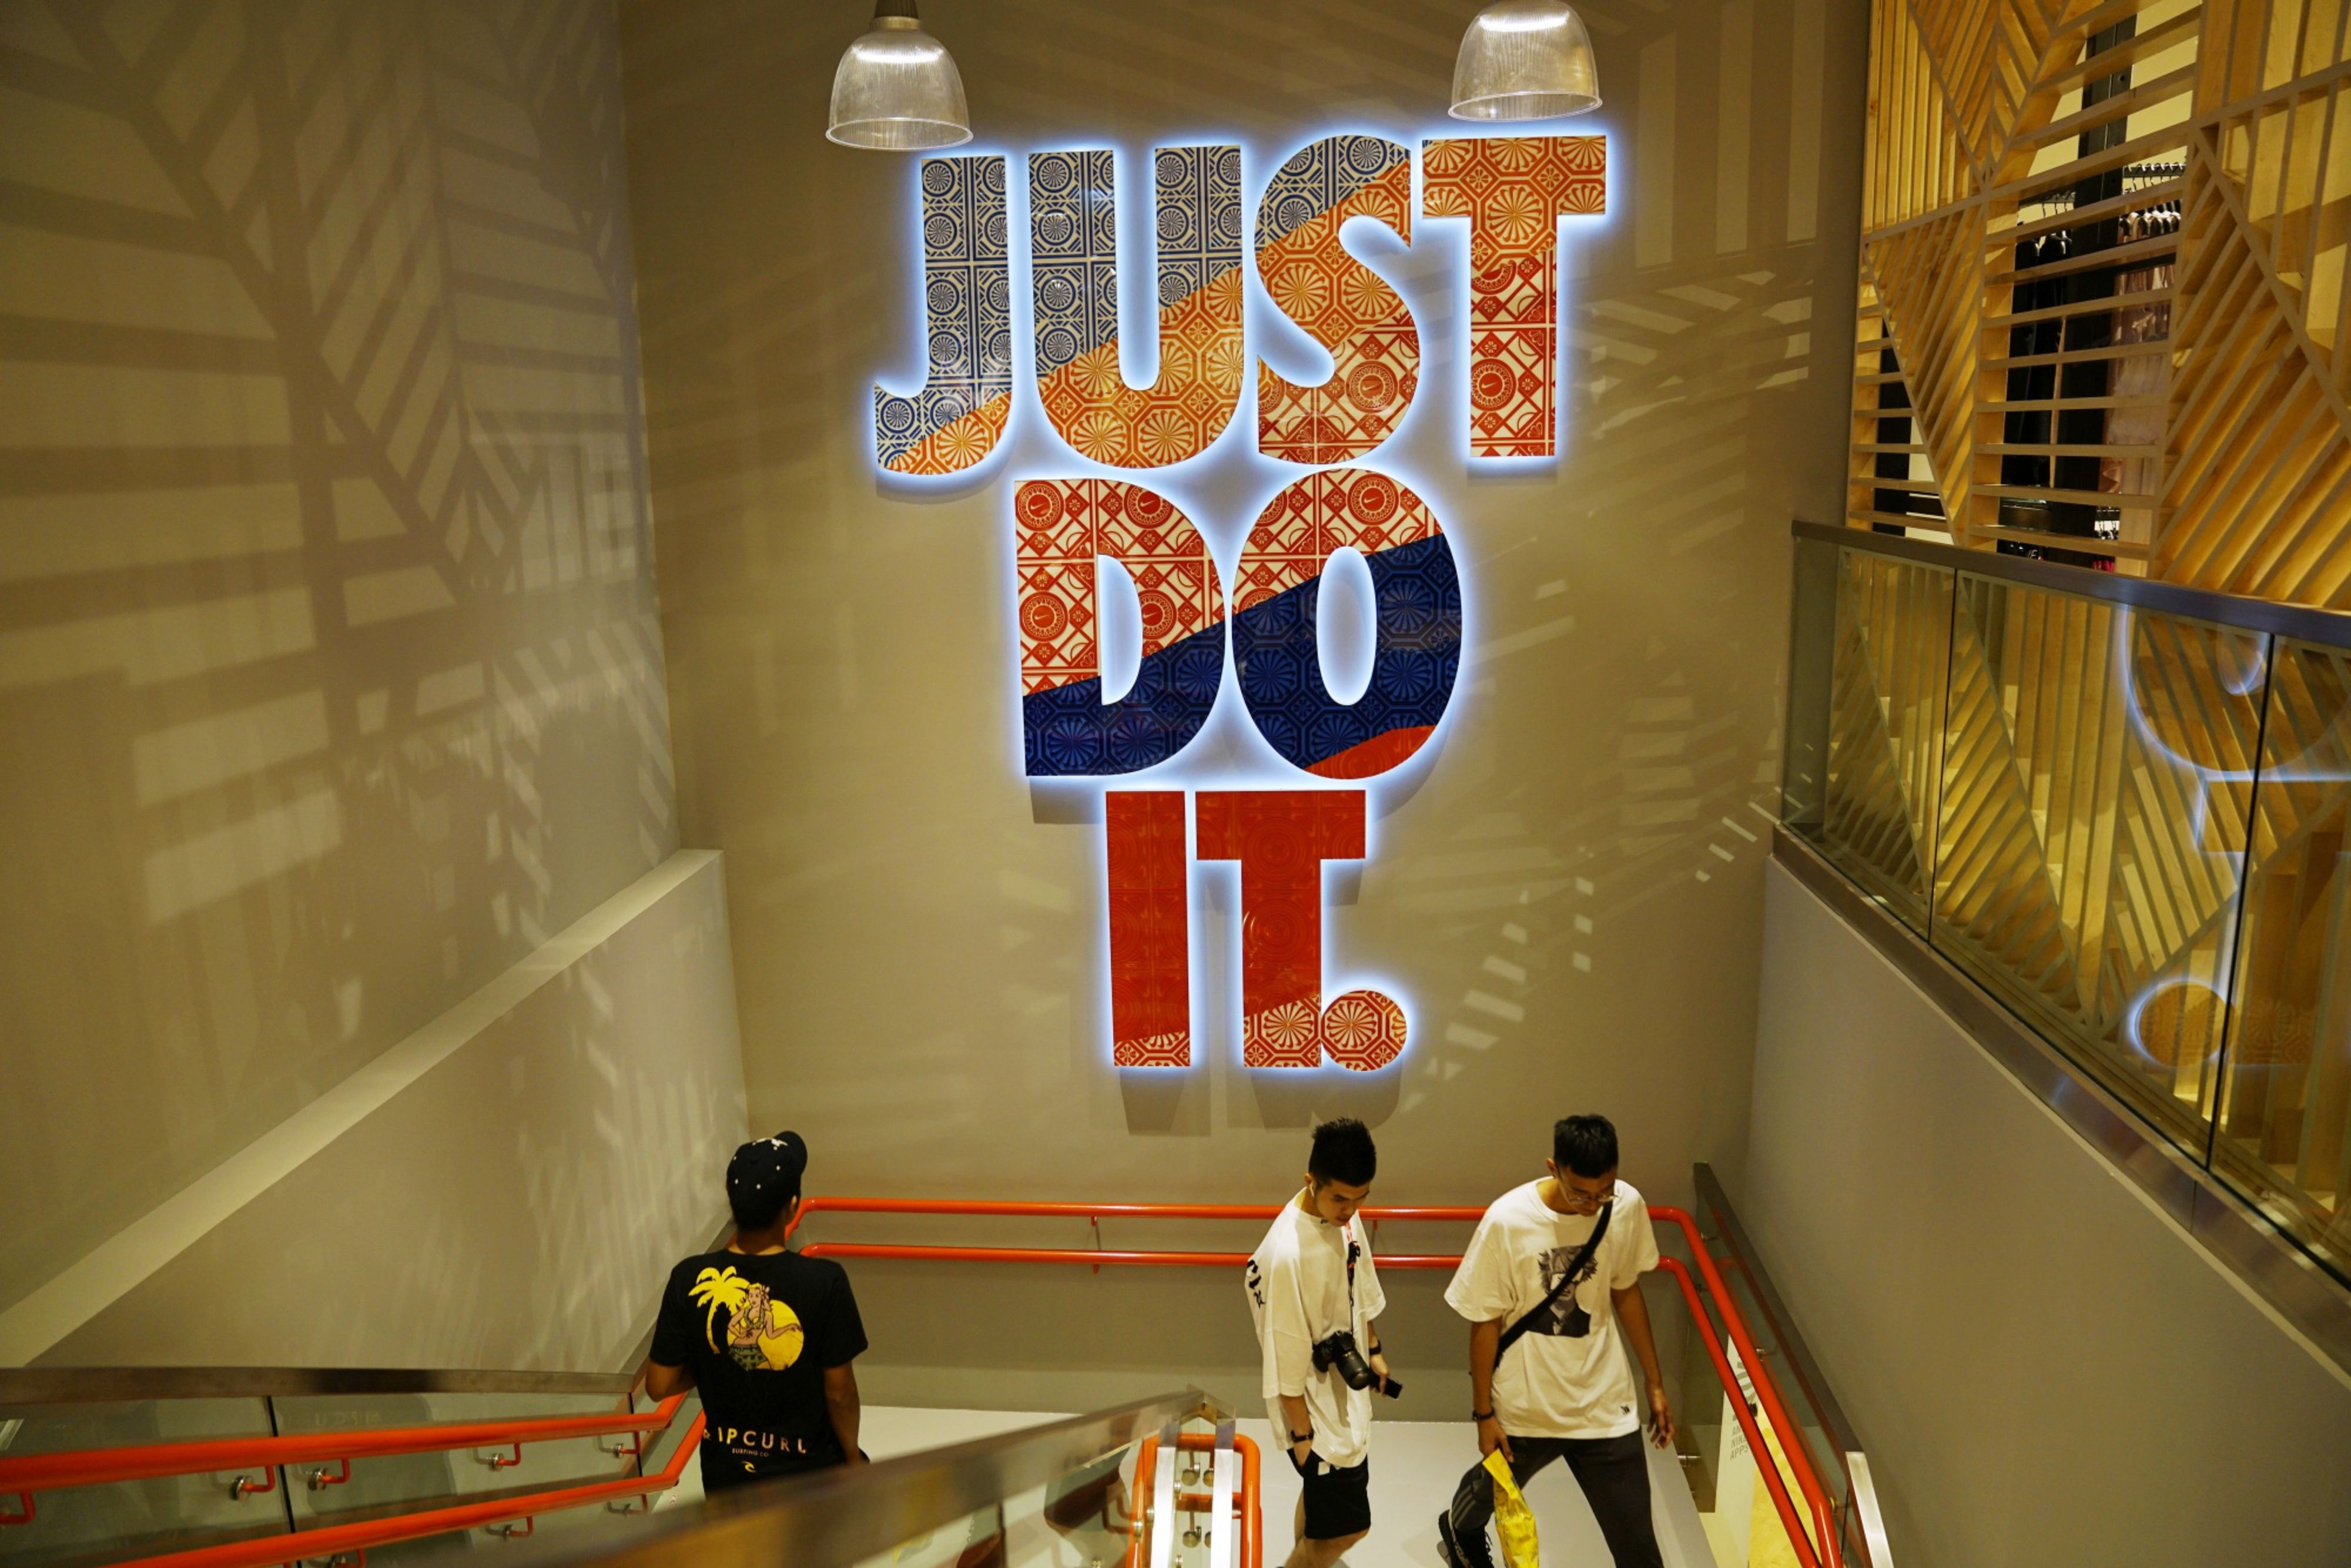 Shoppers walk down the stairs in a Nike store in Jewel Changi Airport in Singapore, on Thursday, April 11, 2019.